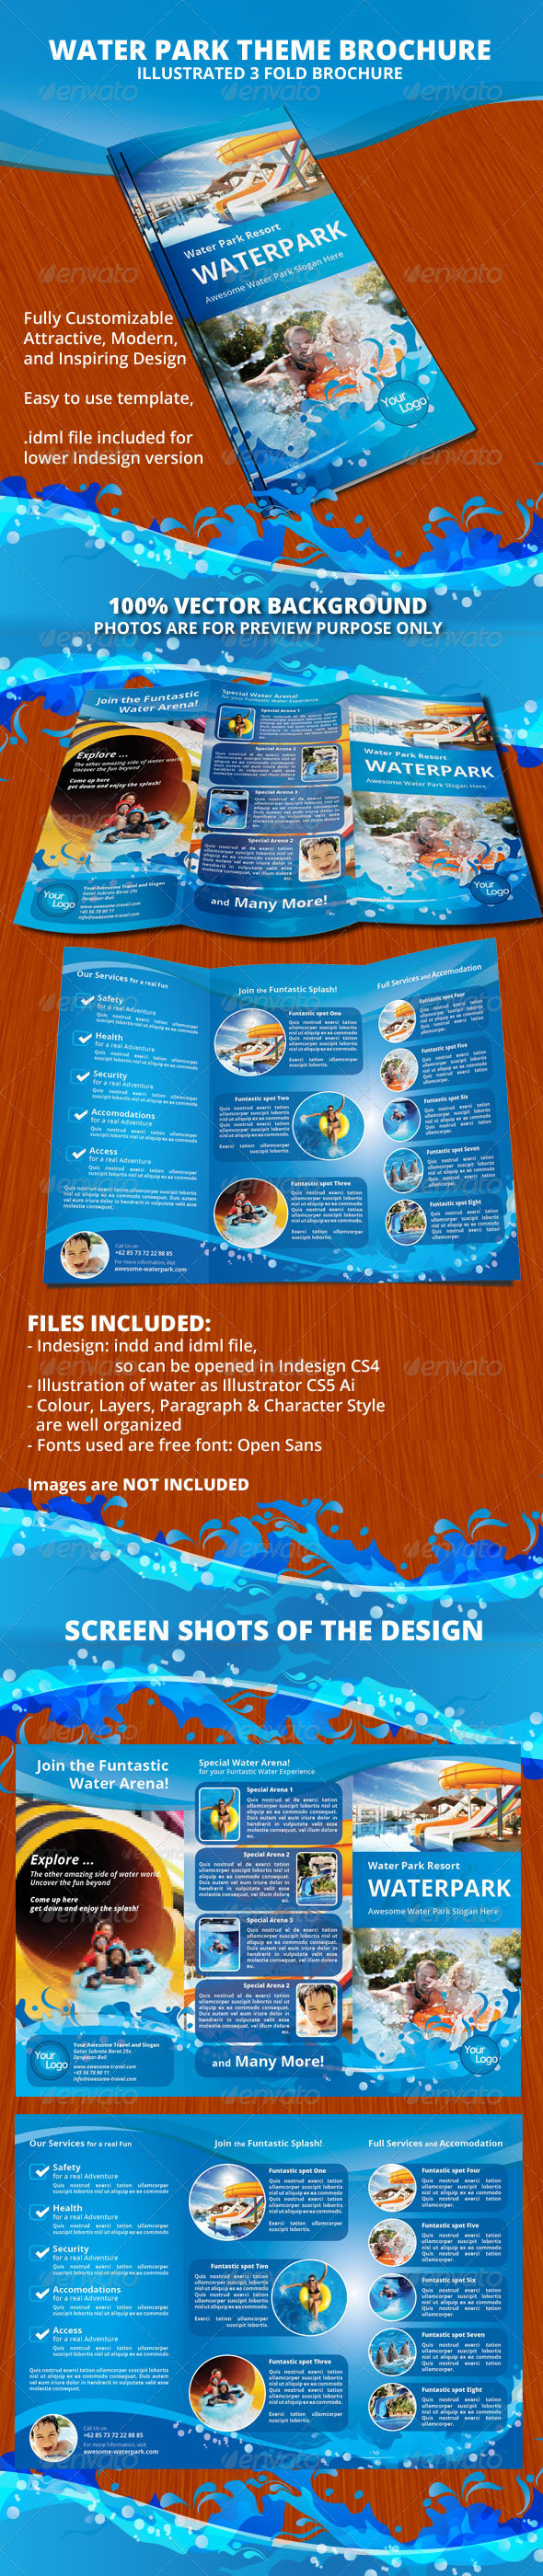 brochure templates envato - water park theme trifold brochure by nyomanfajar